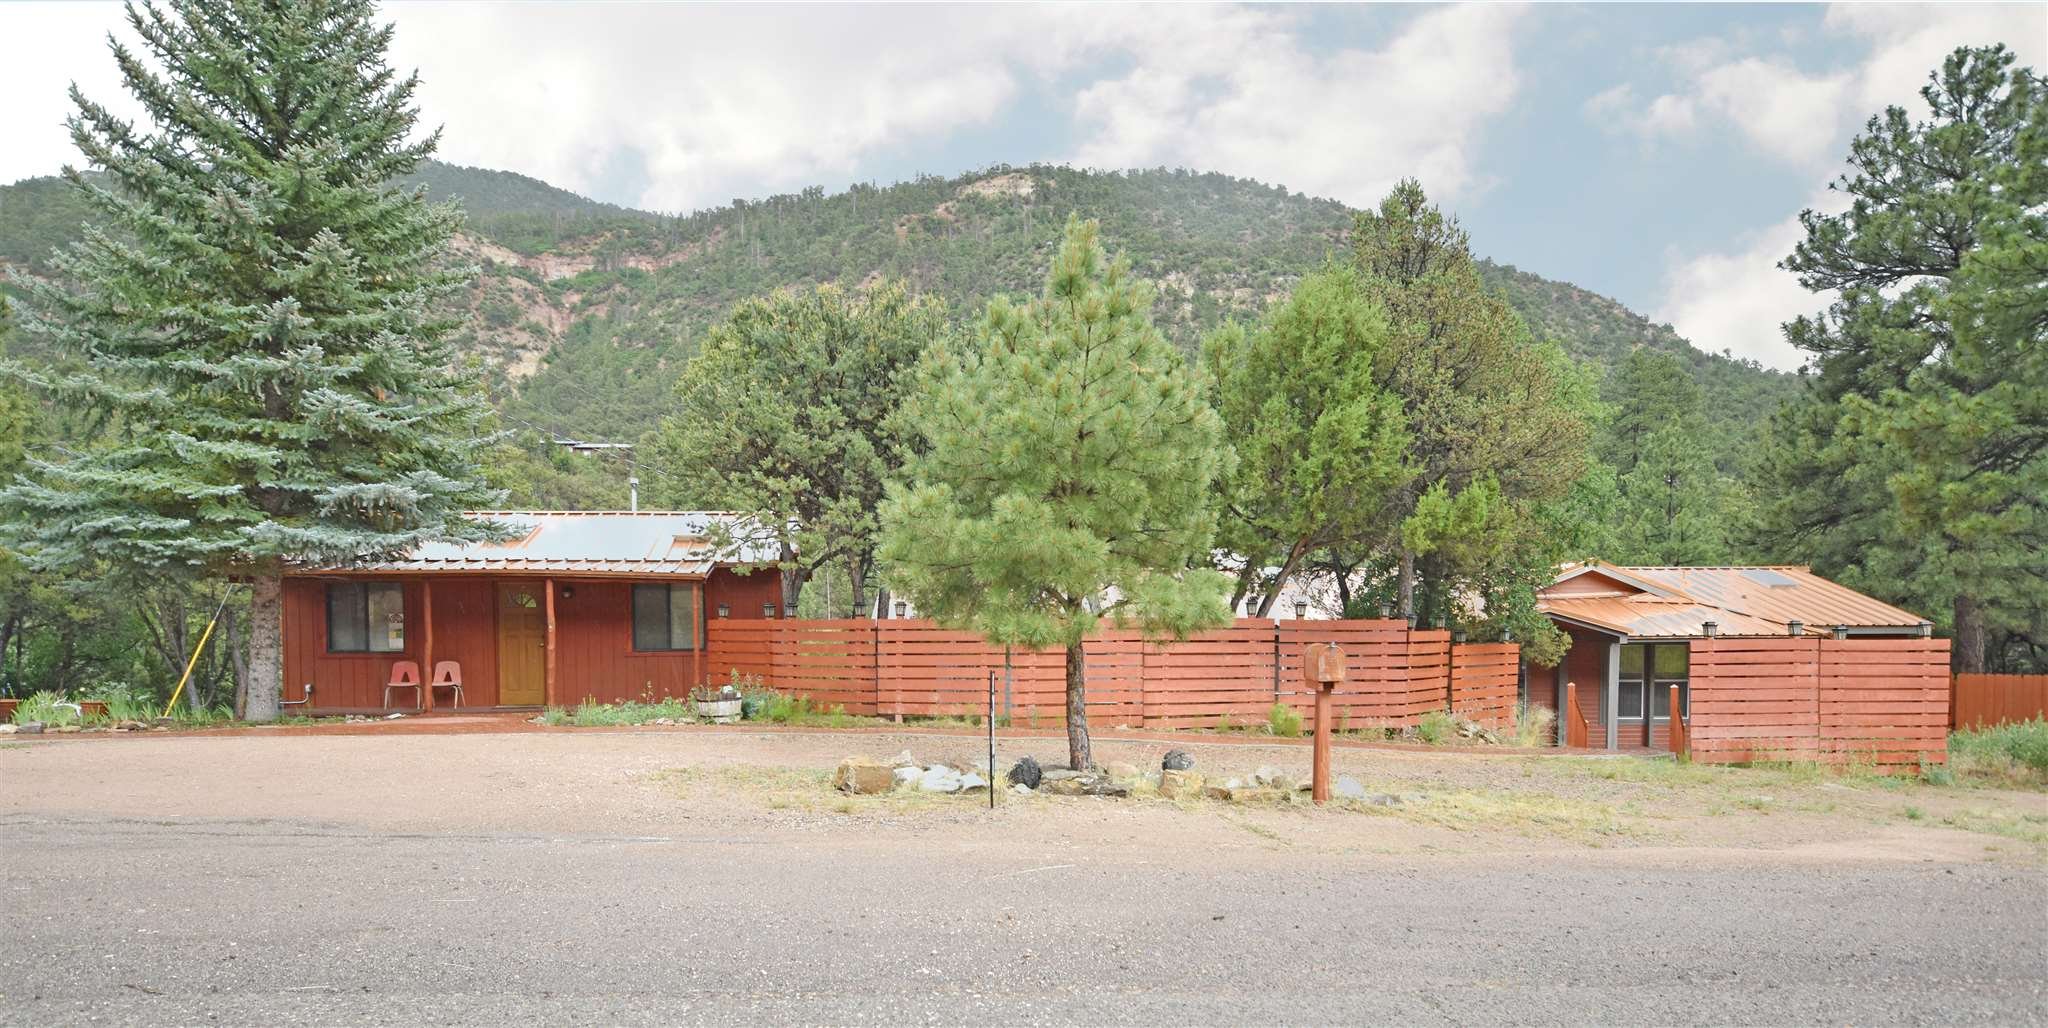 Live, work AND play all in the same place on this great property in the Jemez Mountains! This riverfront lot offers an 1820 sq ft residence and a 430 sq ft studio with highway frontage. Located right outside of Jemez Springs off of Highway 4, this spot is always accessible and is the perfect location for your home-based business or studio. It is currently operating as a successful chiropractic clinic. Brand new roof with transferrable warranty. Upgrades include newer appliances, washer and dryer, hot water heater & carpet. The open concept floorplan makes this home nice and comfortable and the skylights bring in plenty of natural light. Walk out onto the back deck that looks right down at the serene Jemez River. Terrific views all the way around. It doesn't get much better than this!